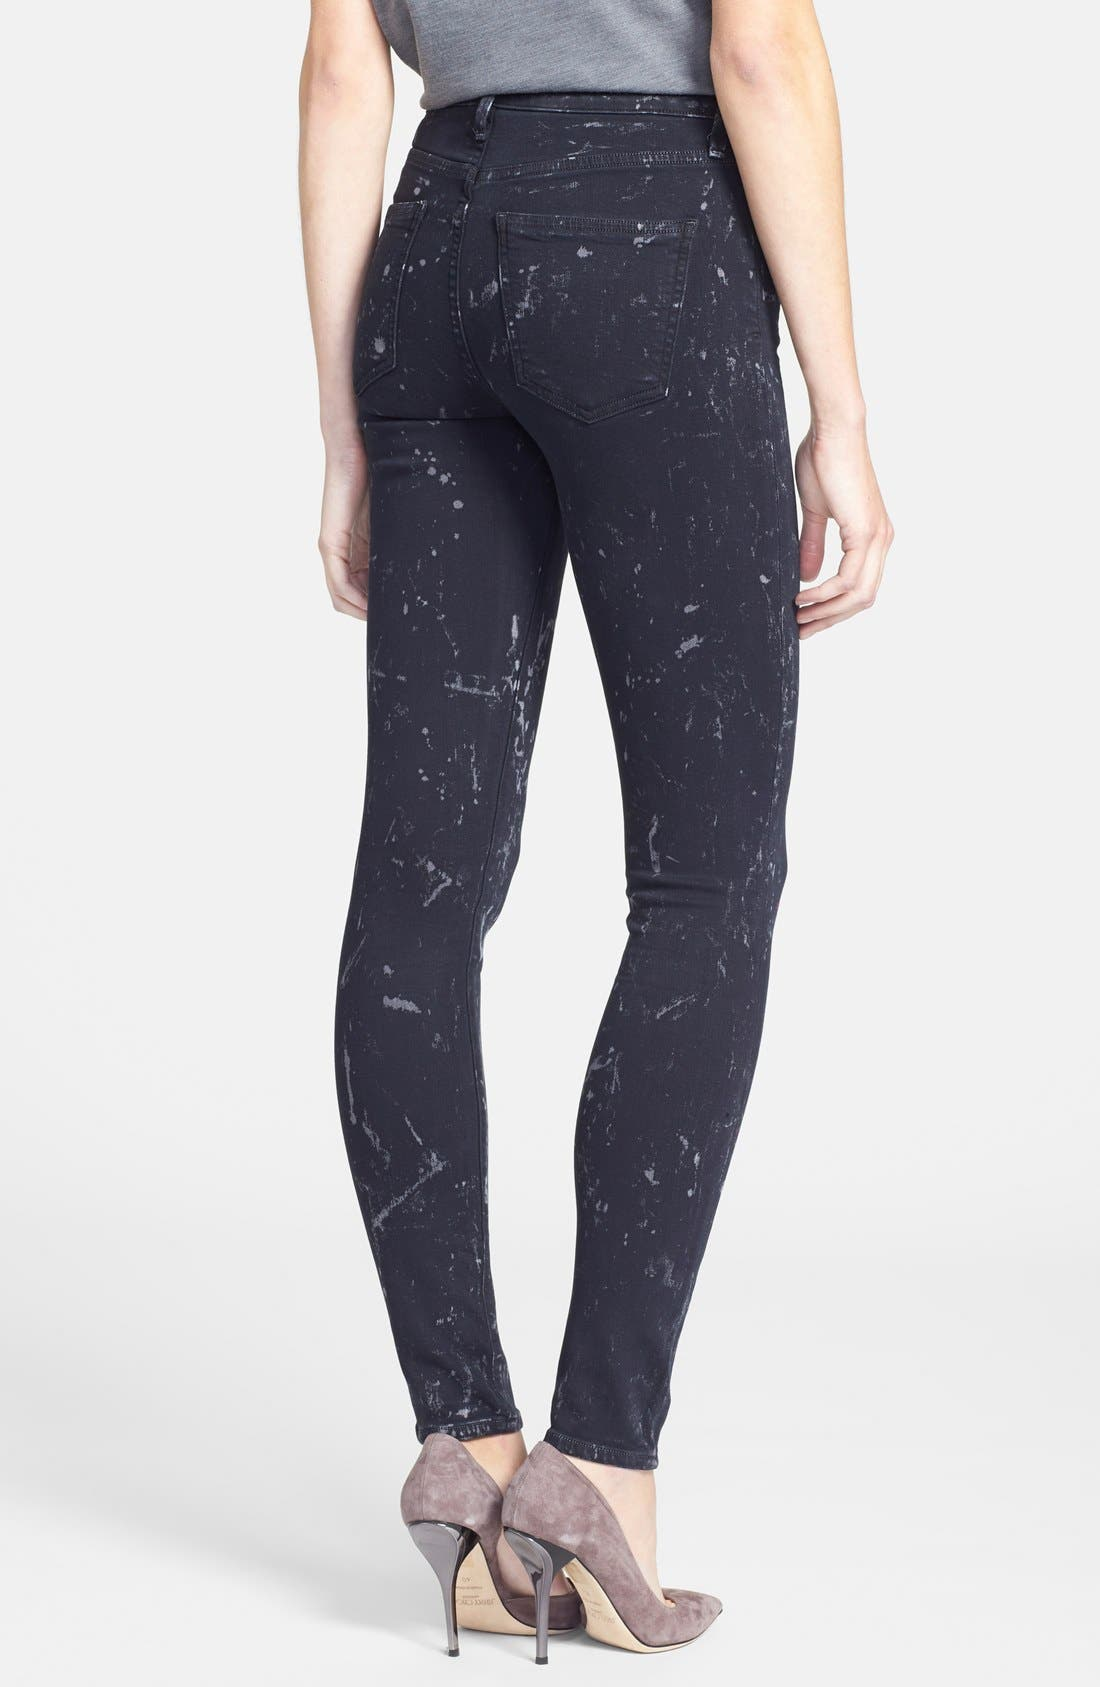 Alternate Image 2  - Citizens of Humanity 'Rocket' Skinny Jeans (Starry Black)